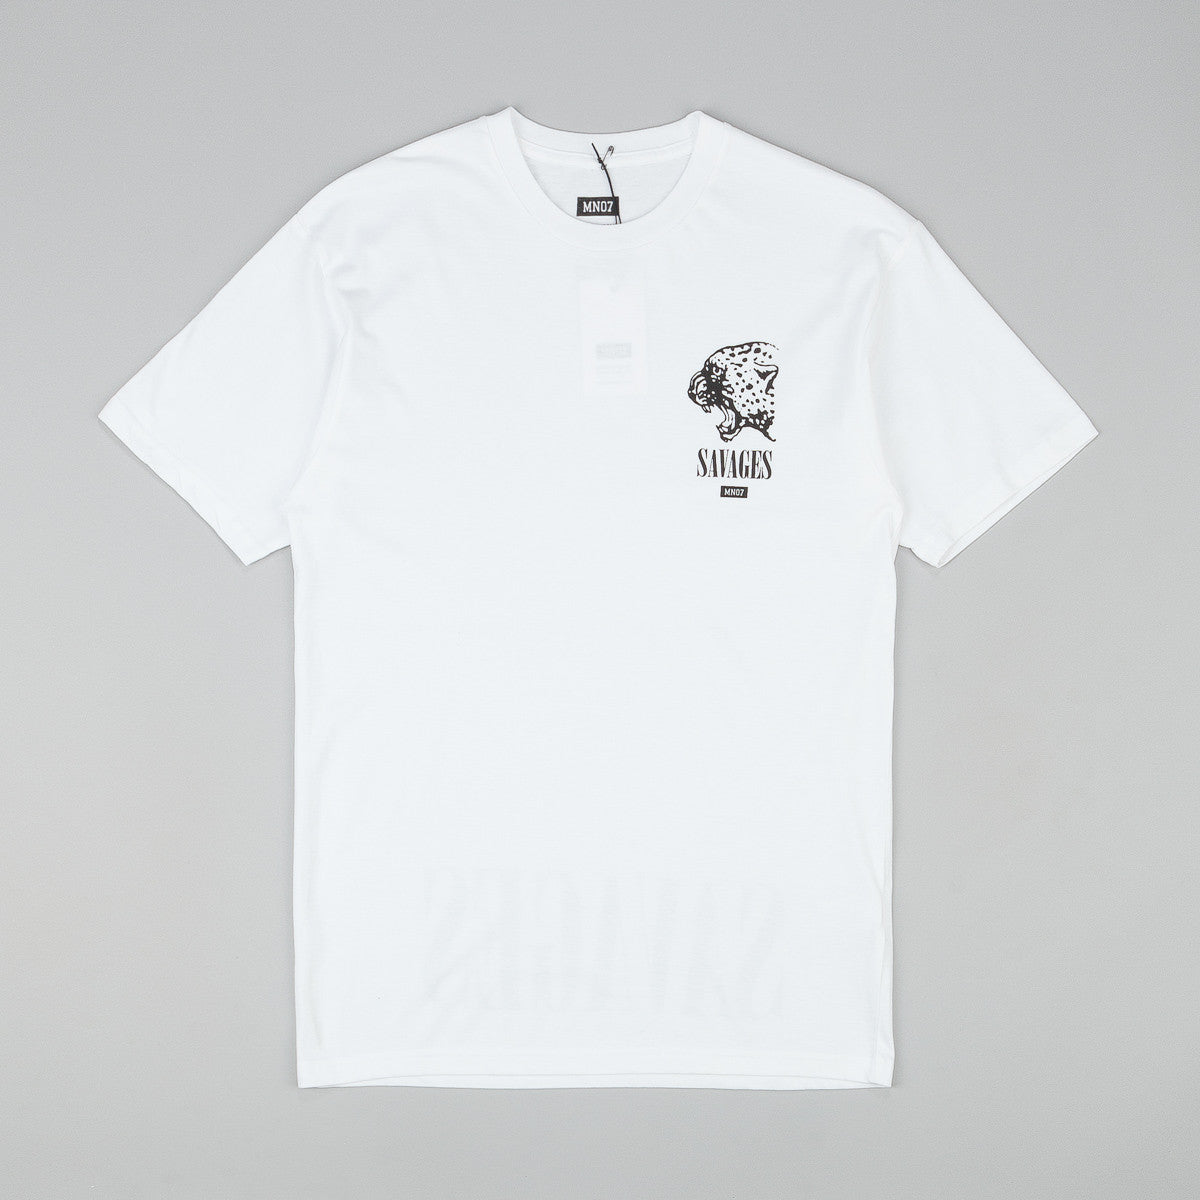 MN07 Savages III T-Shirt - White